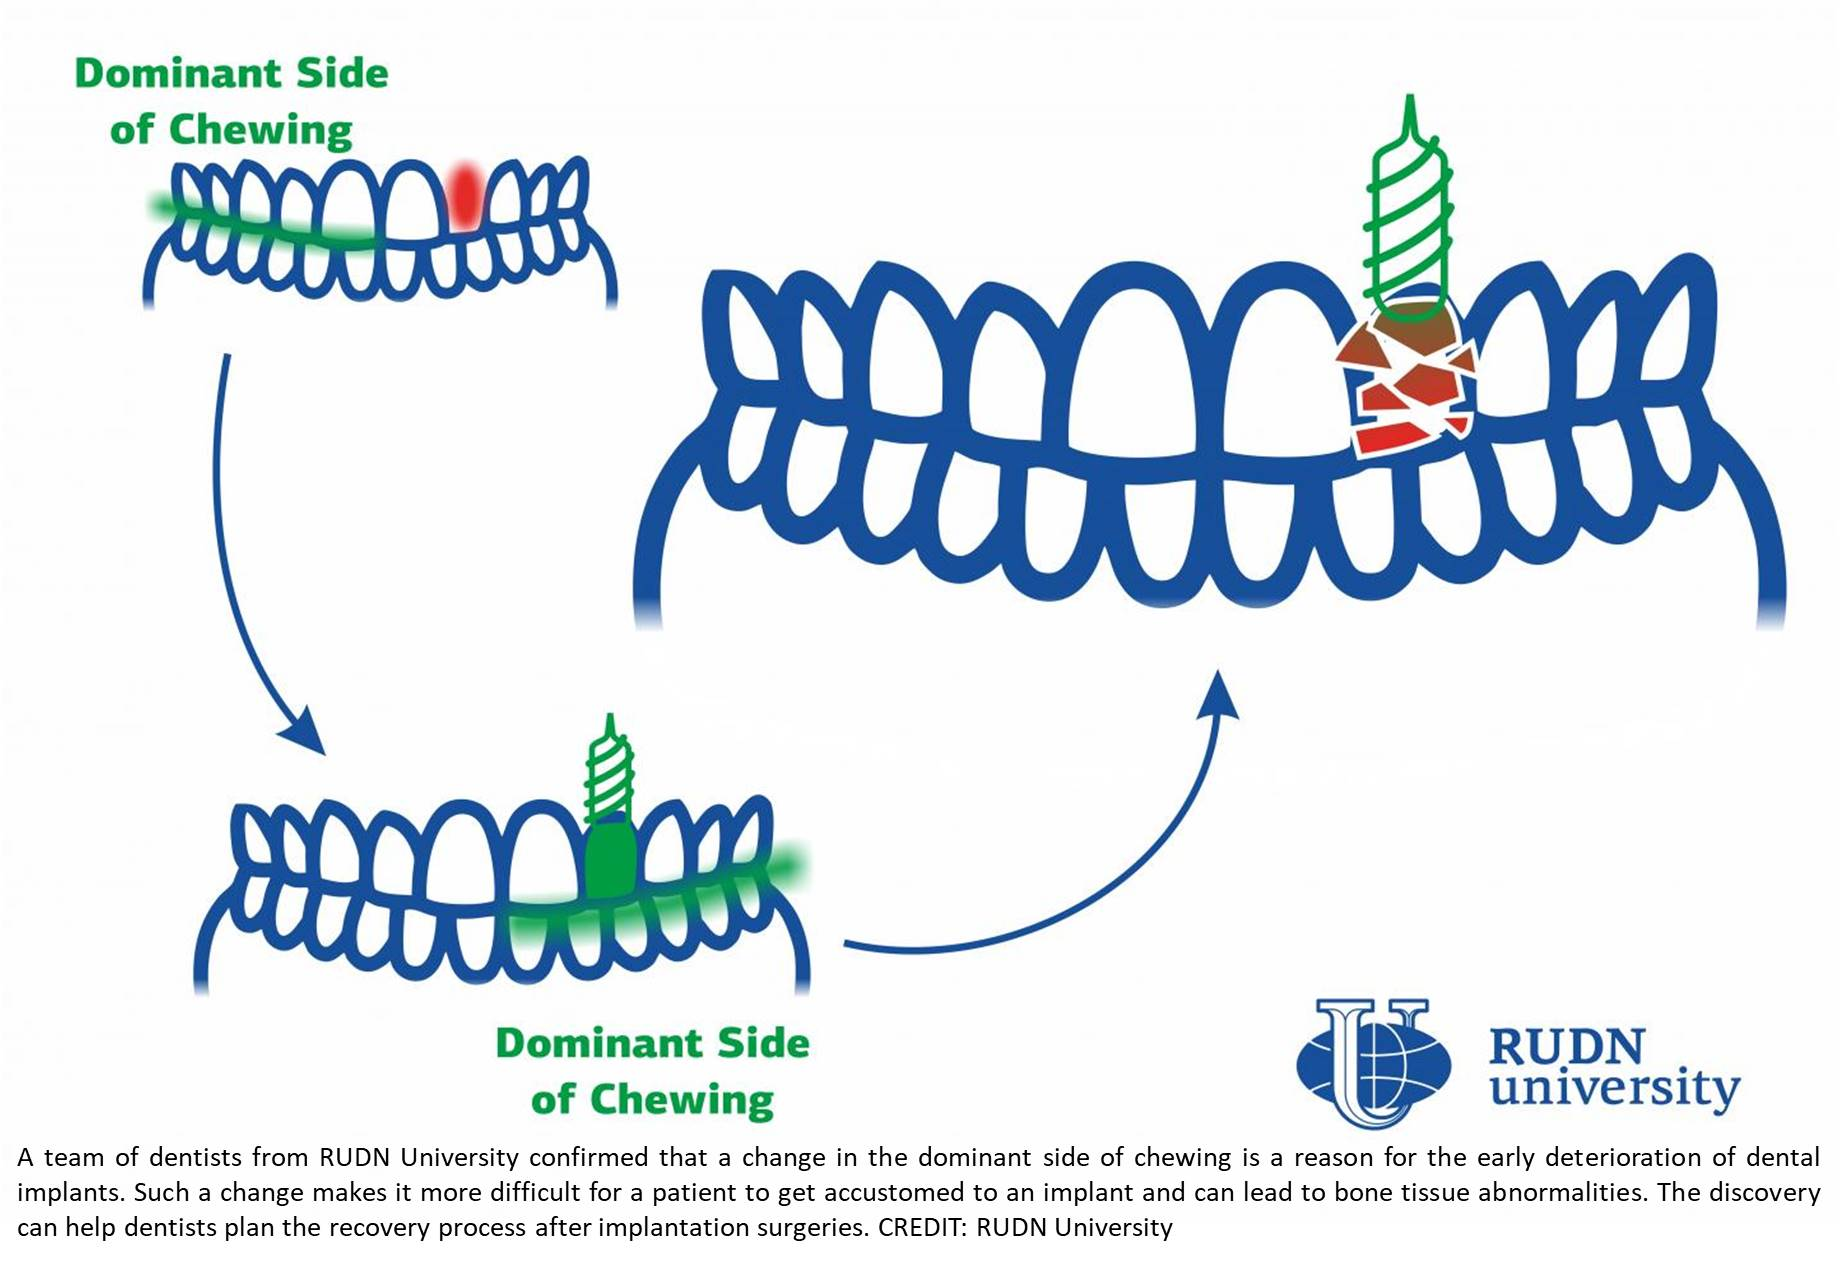 Chewing habits determine early deterioration of dental implants